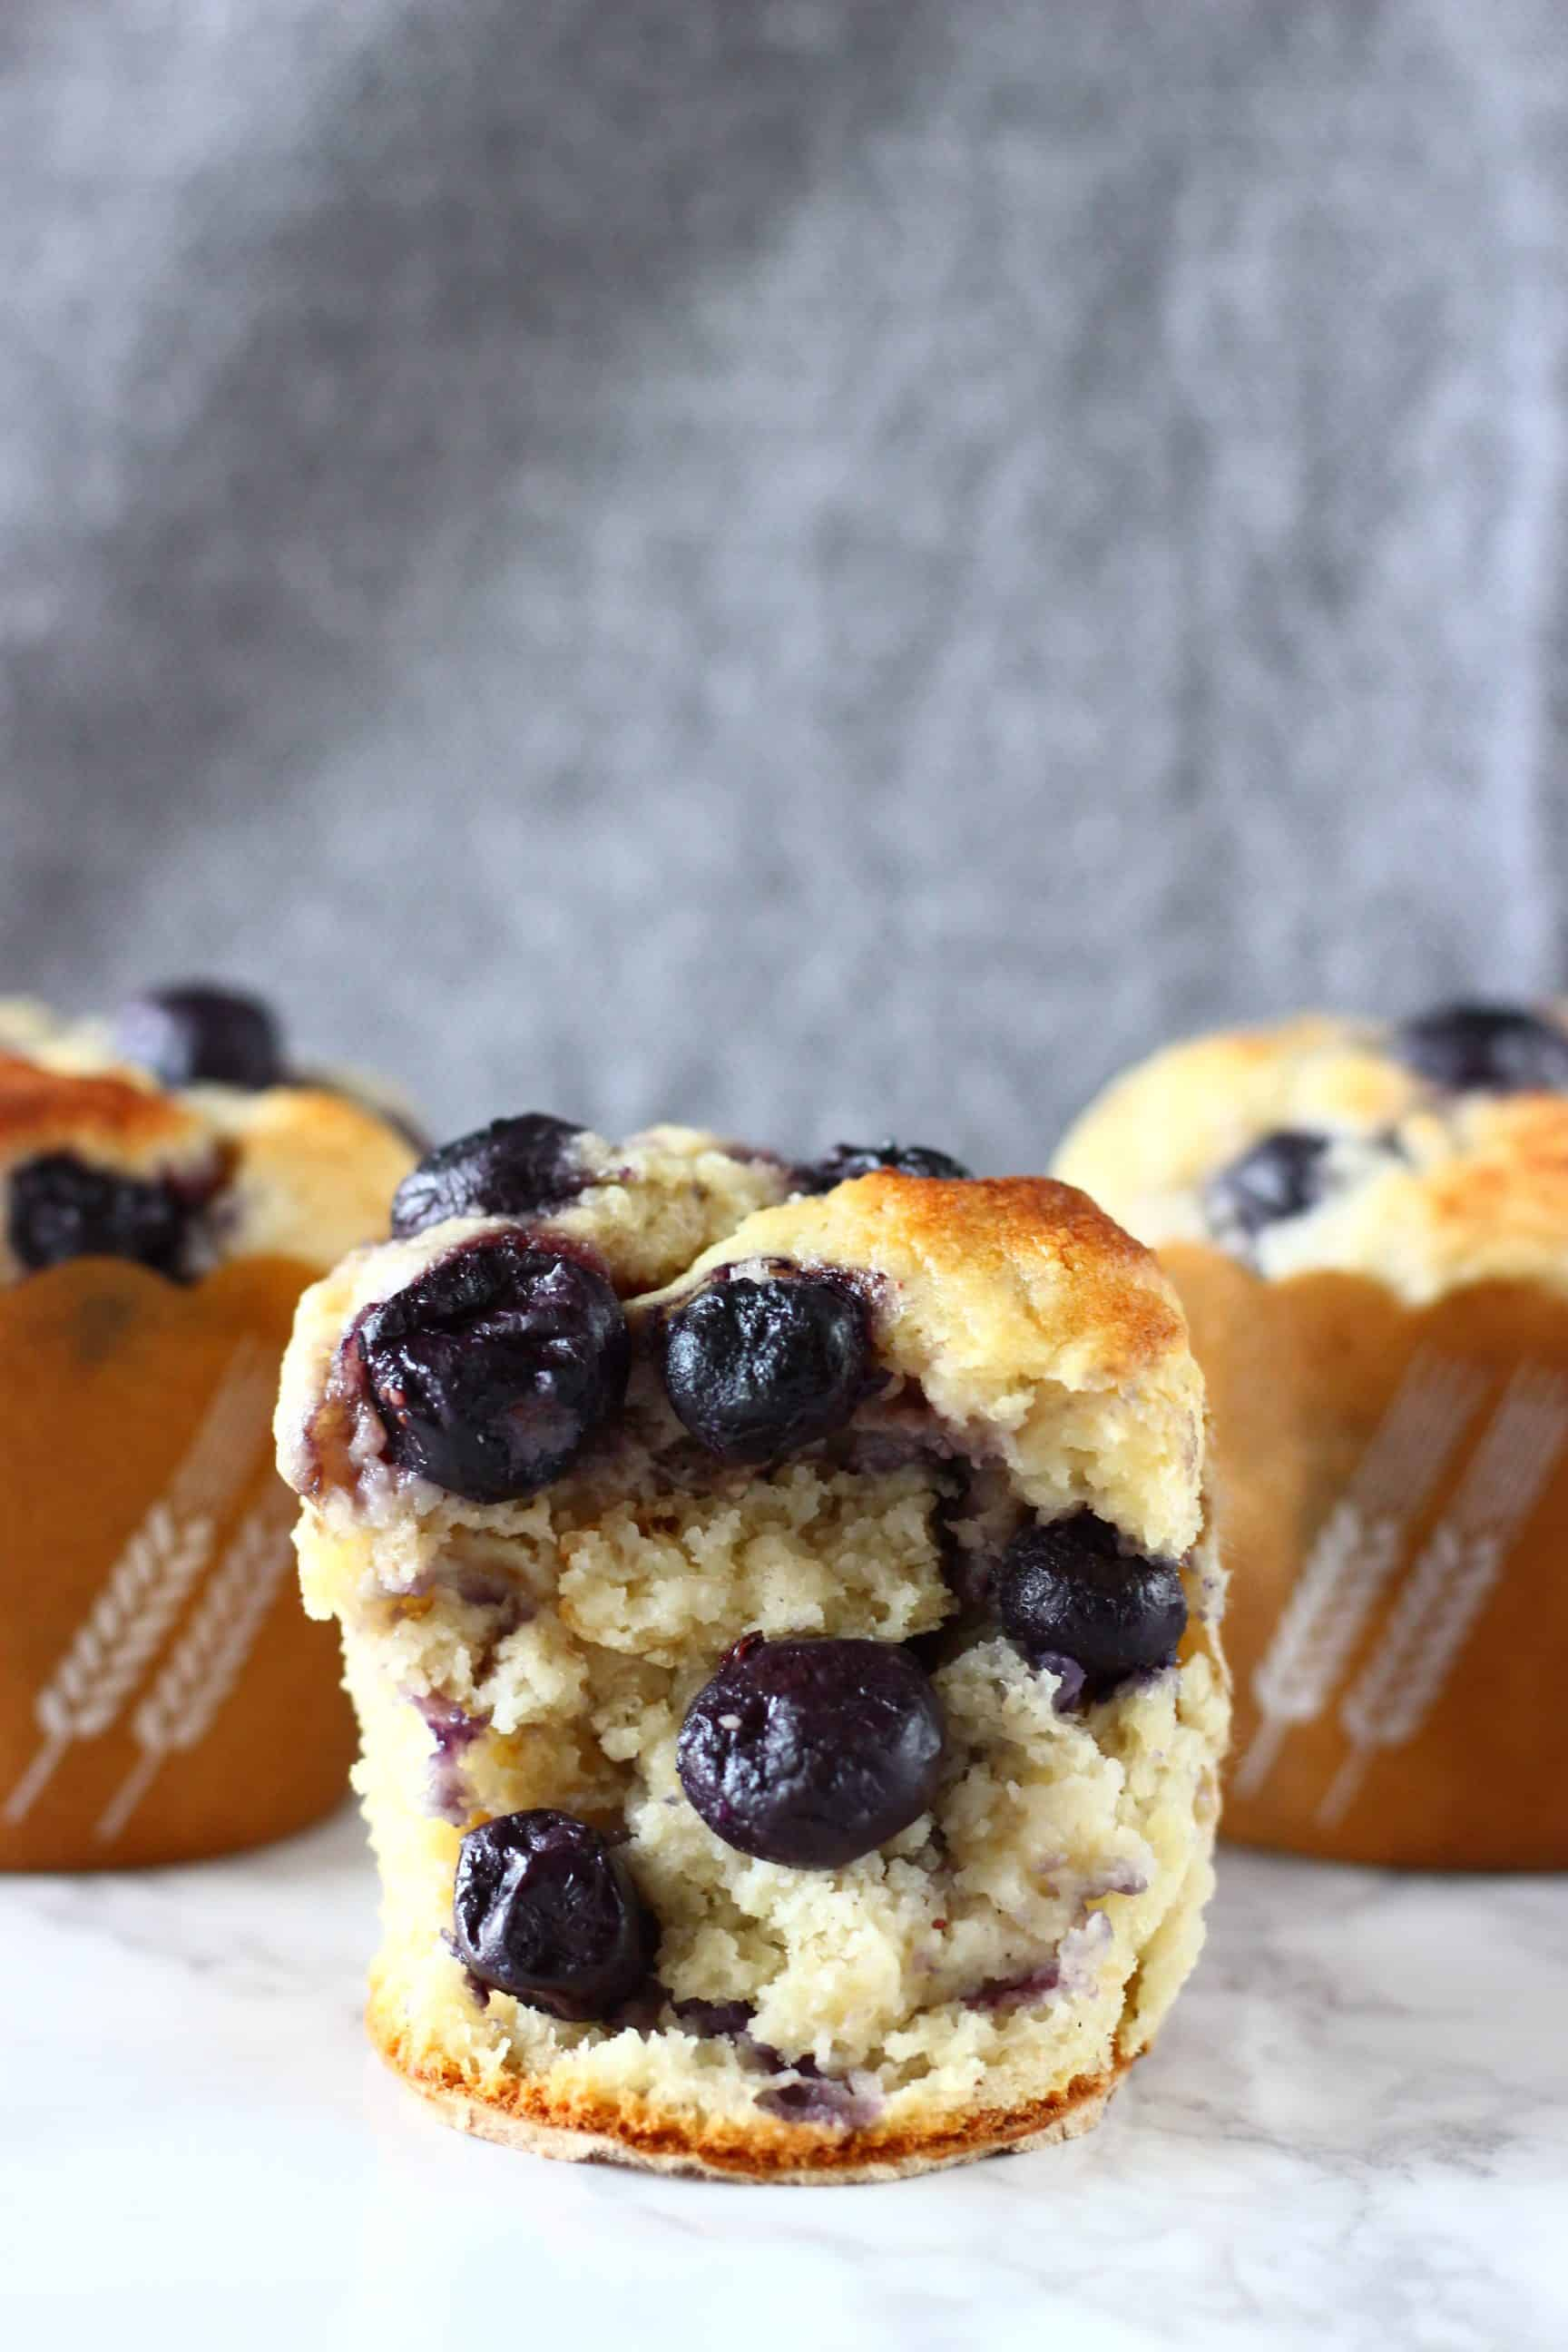 Three gluten-free vegan blueberry banana muffins with one cut in half